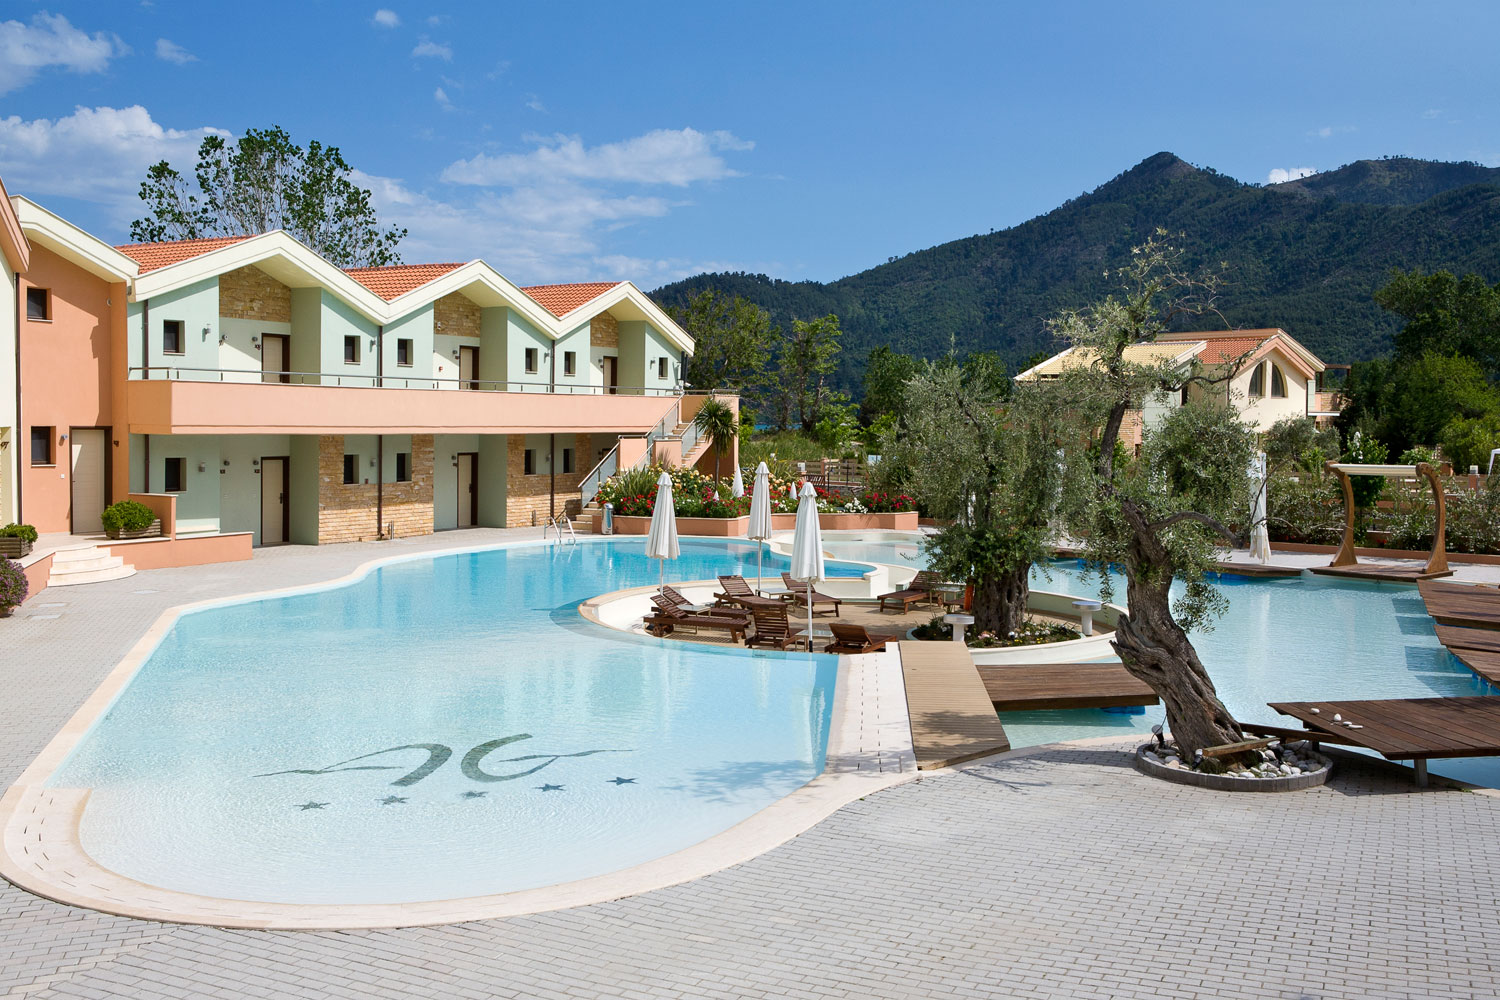 ALEXANDRA GOLDEN BOUTIQUE HOTEL  HOTELS IN  Skala Panagia